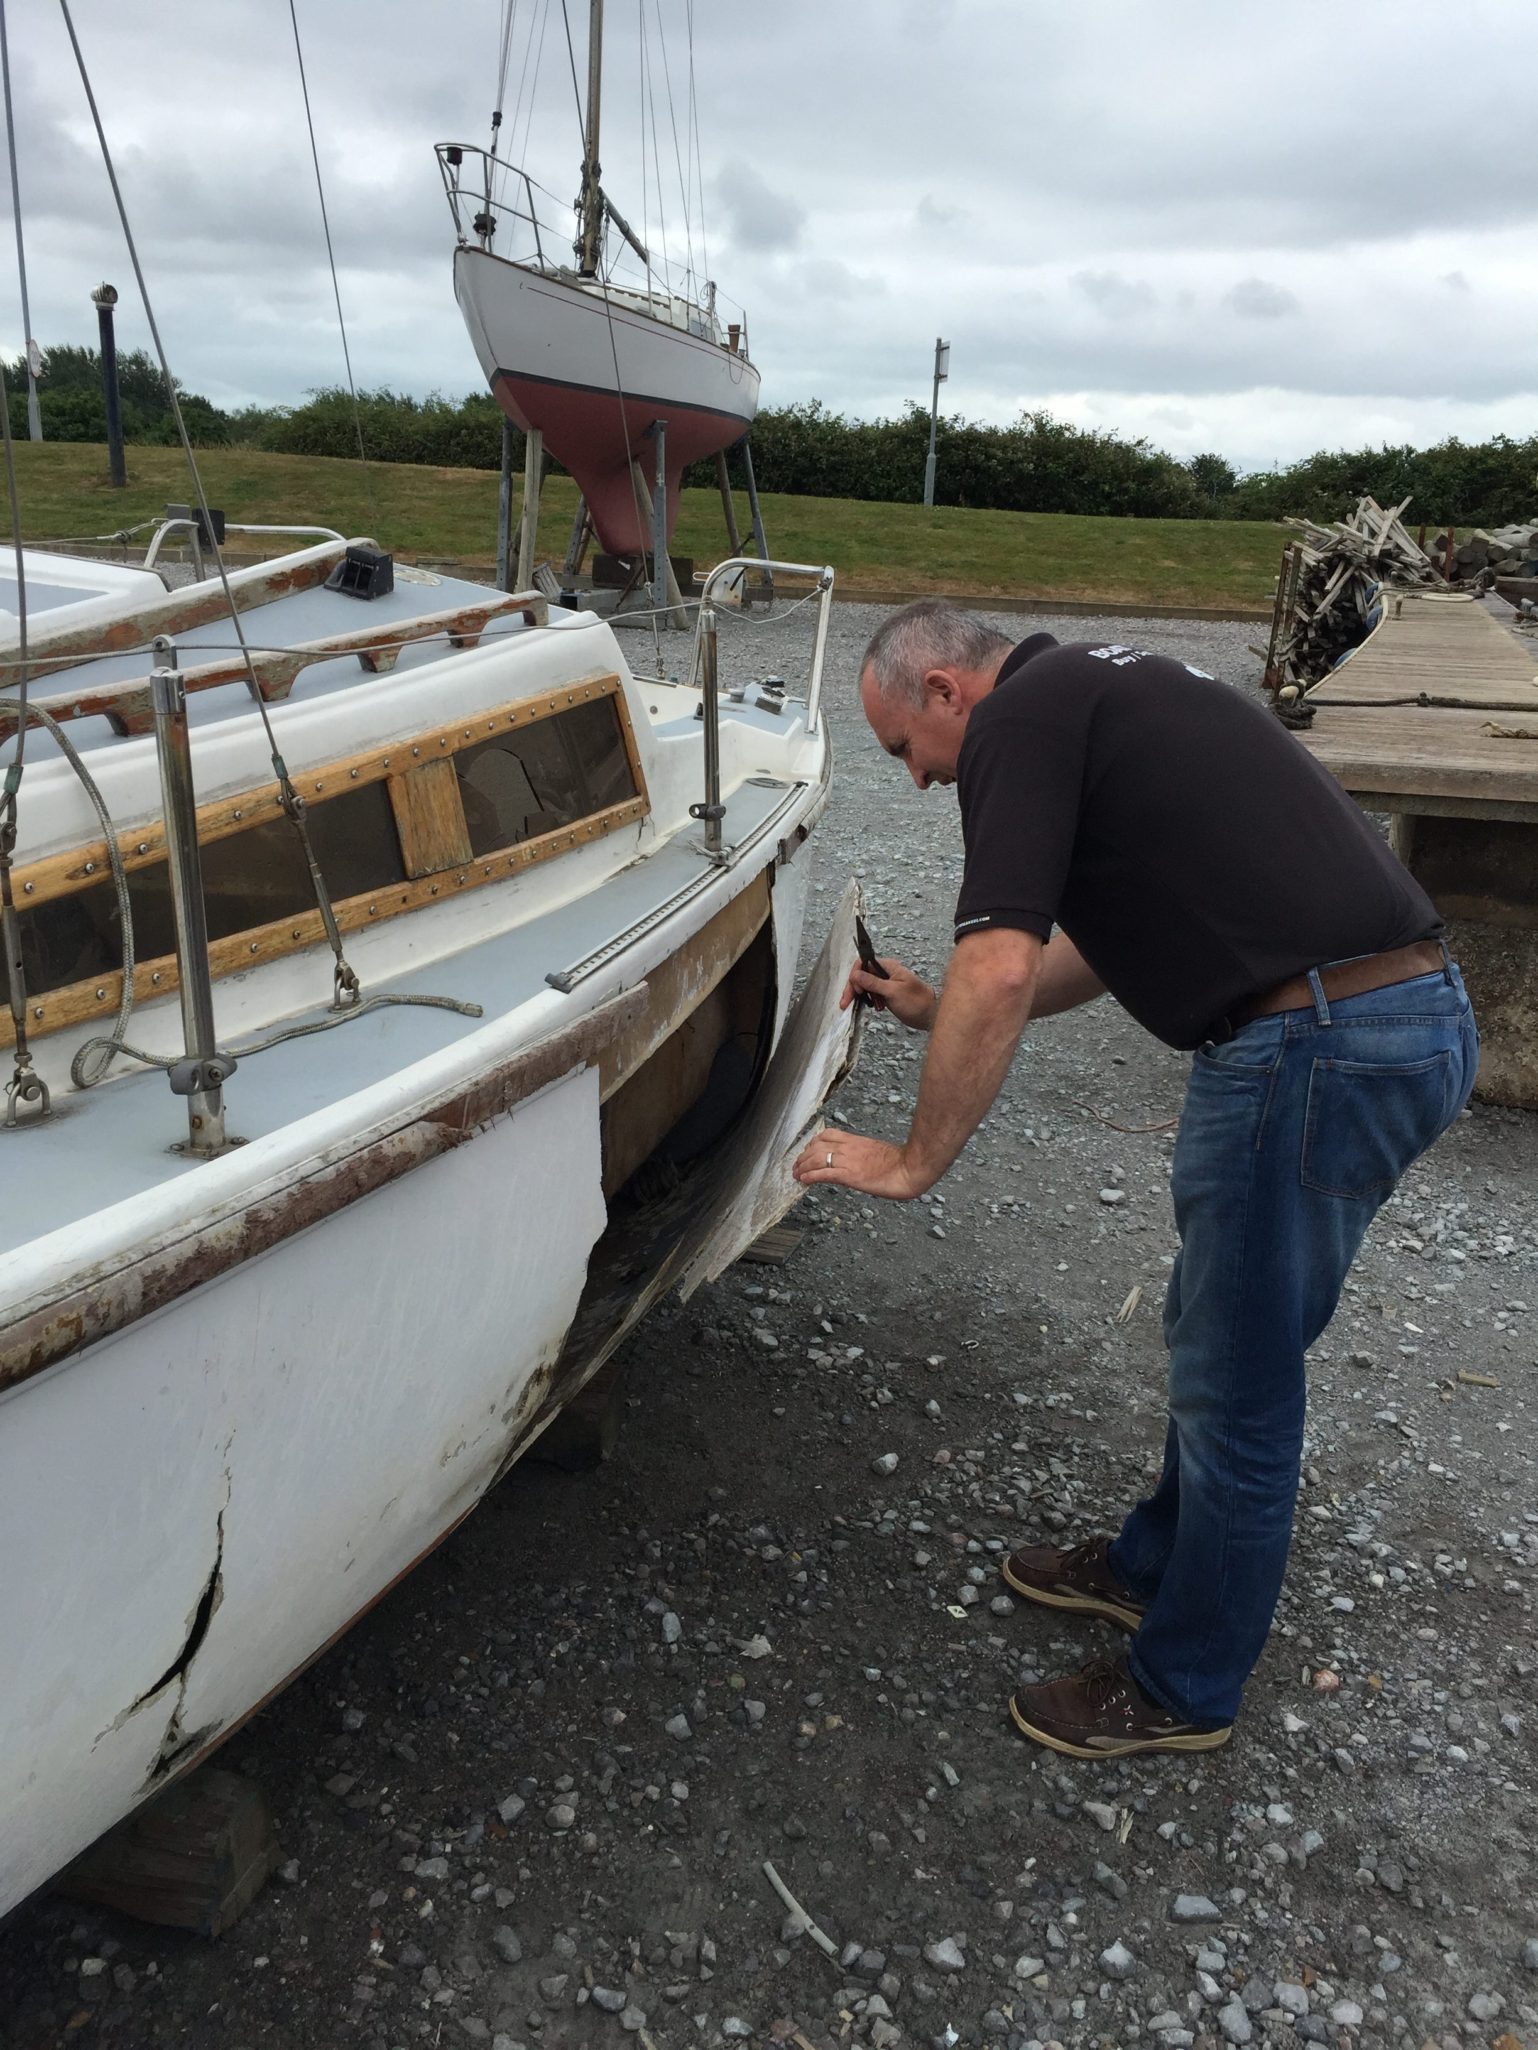 Boatbreakers News - Boatbreakers Information